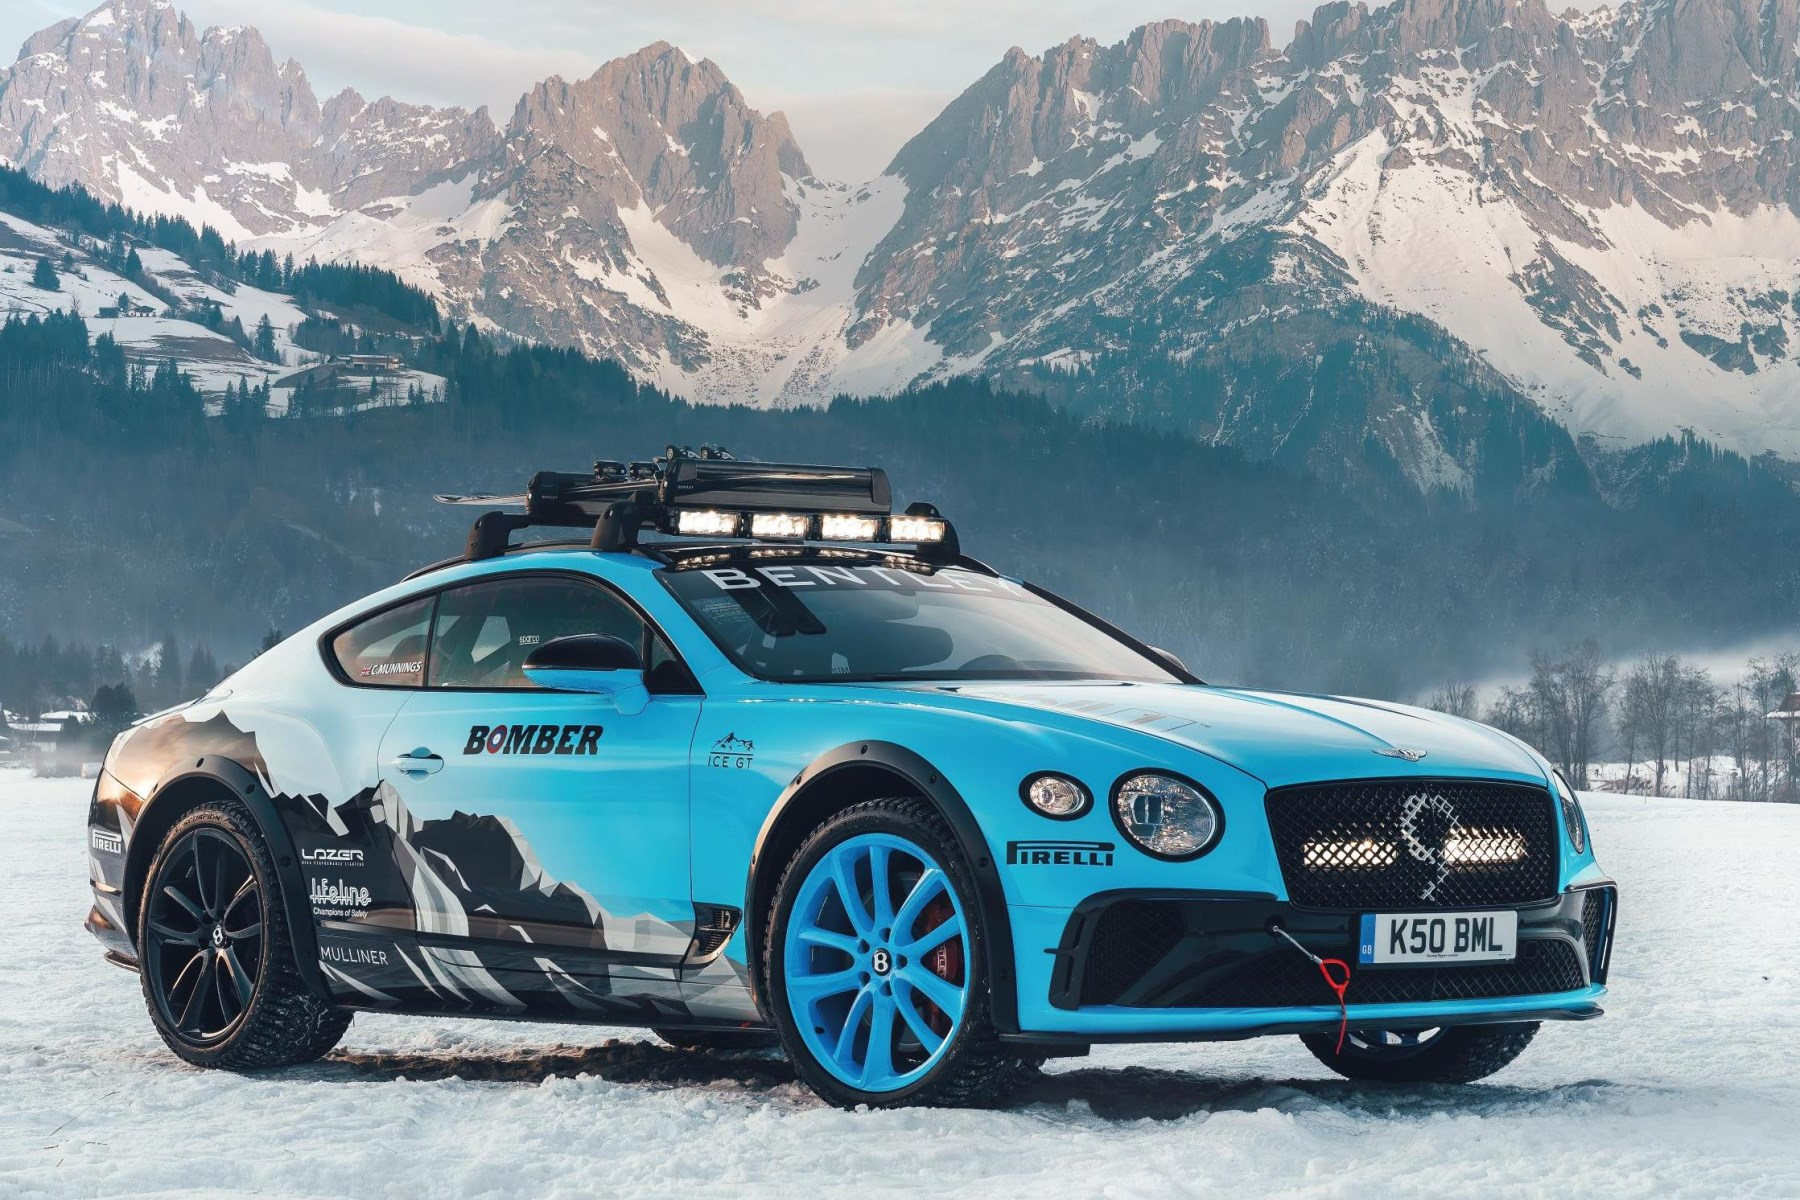 Bentley Continental GT - 2020 GP Ice Race in Zell am See, Austria